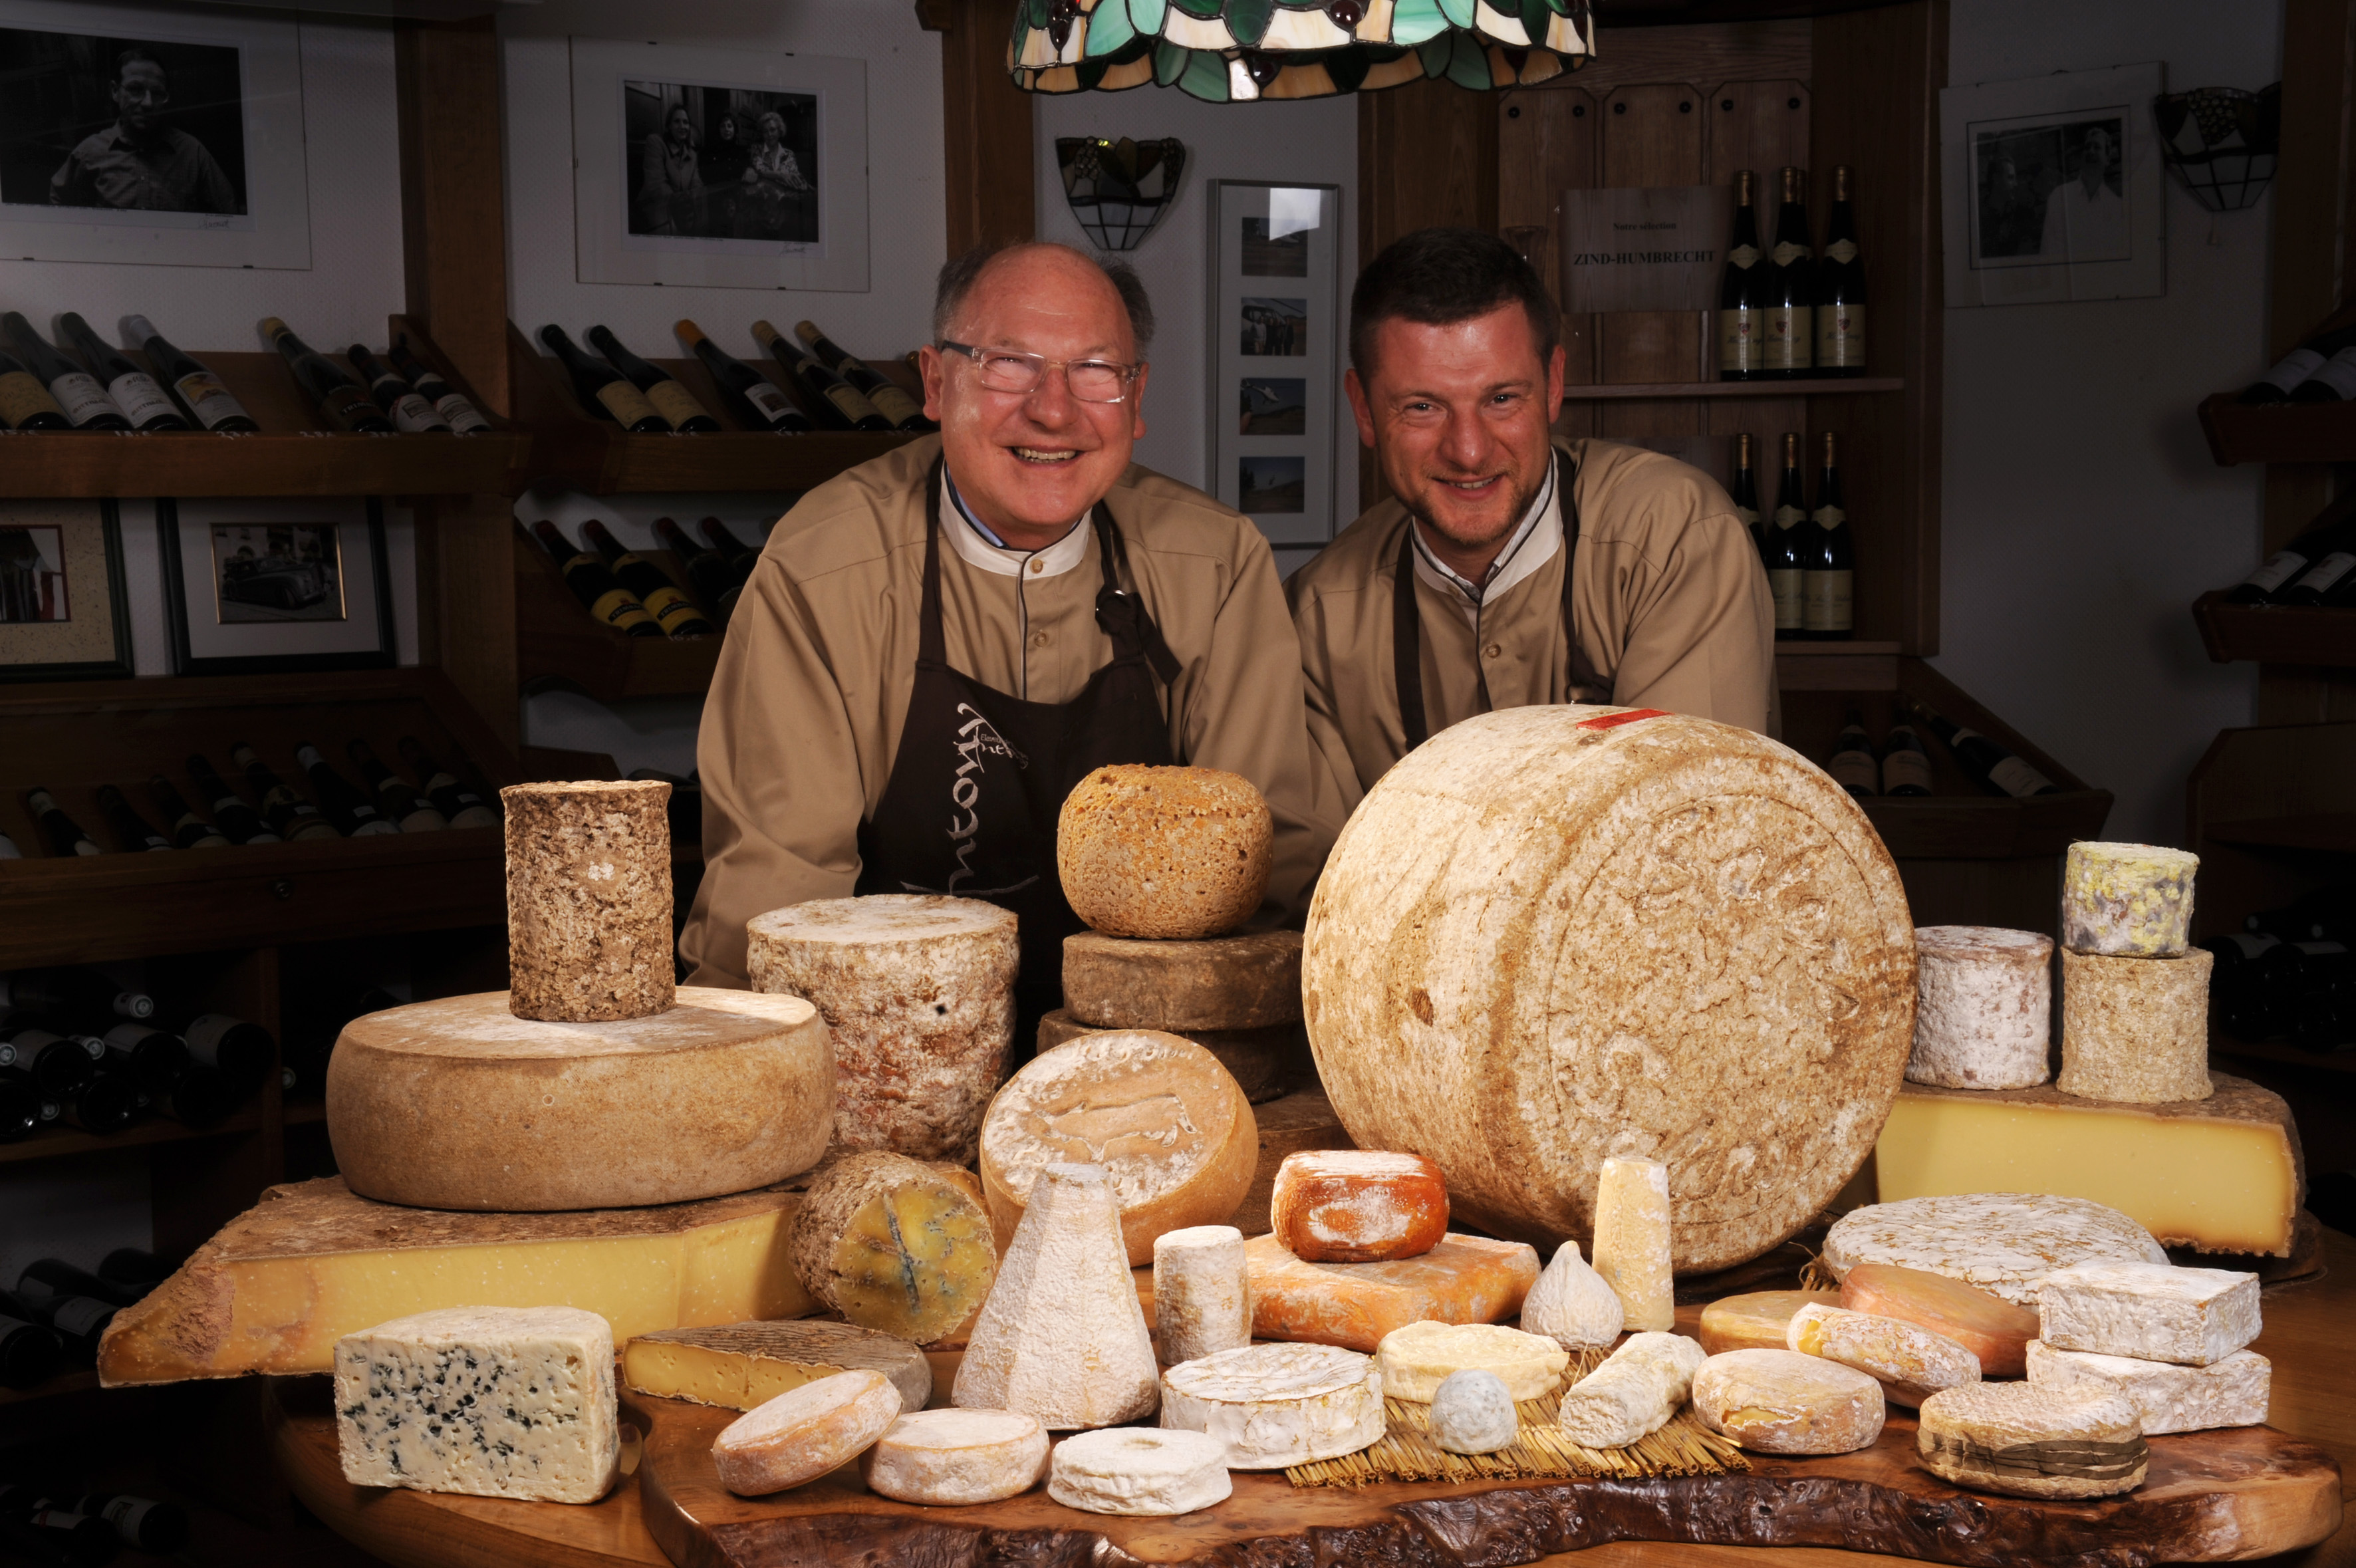 http://www.fromagerieantony.fr/IMG/jpg/portrait_compo_de_fromage_1.jpg